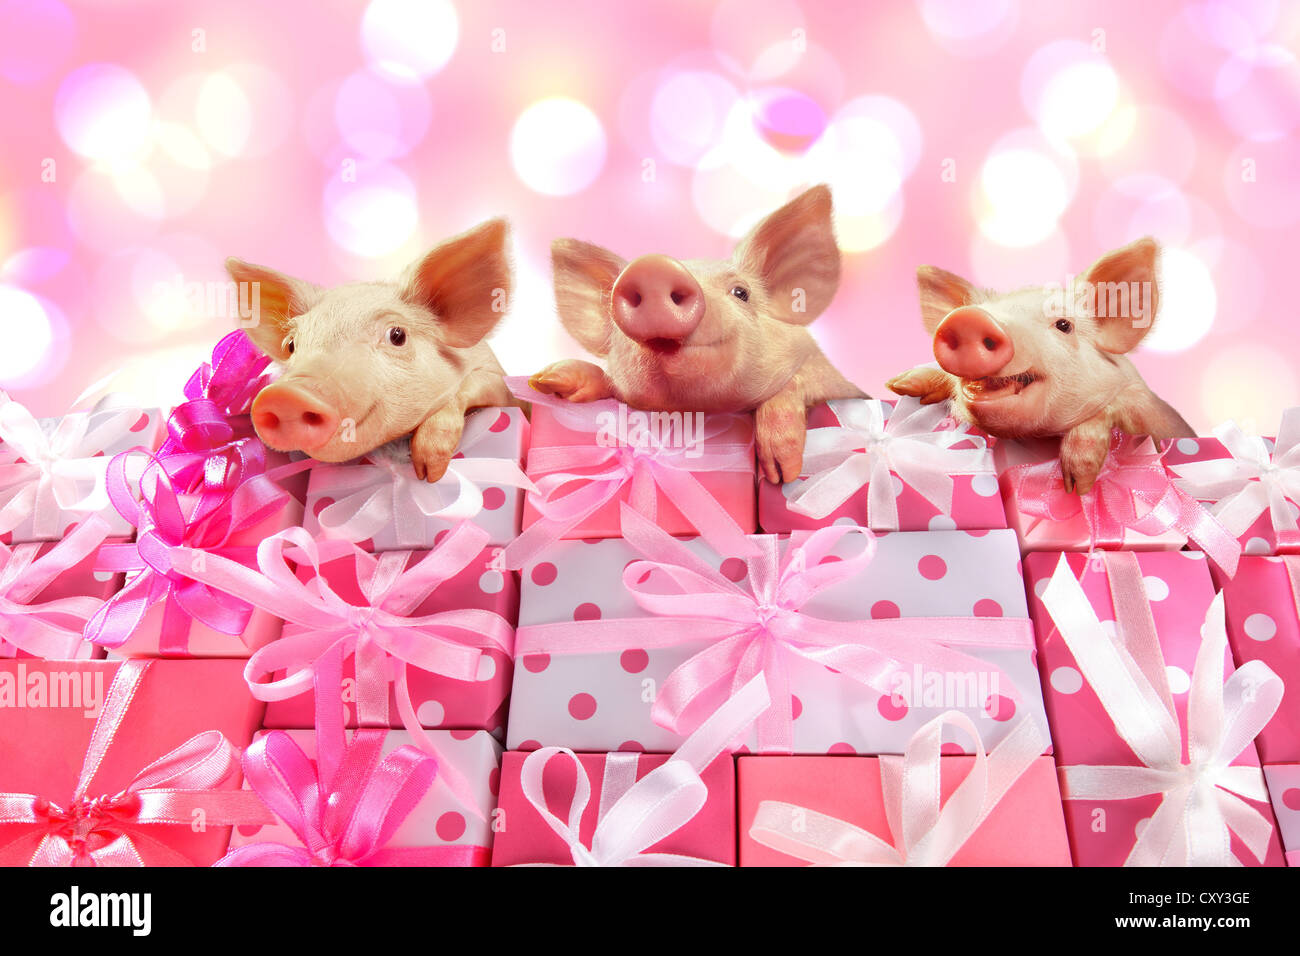 Three piglets on a stack of pink gifts - Stock Image